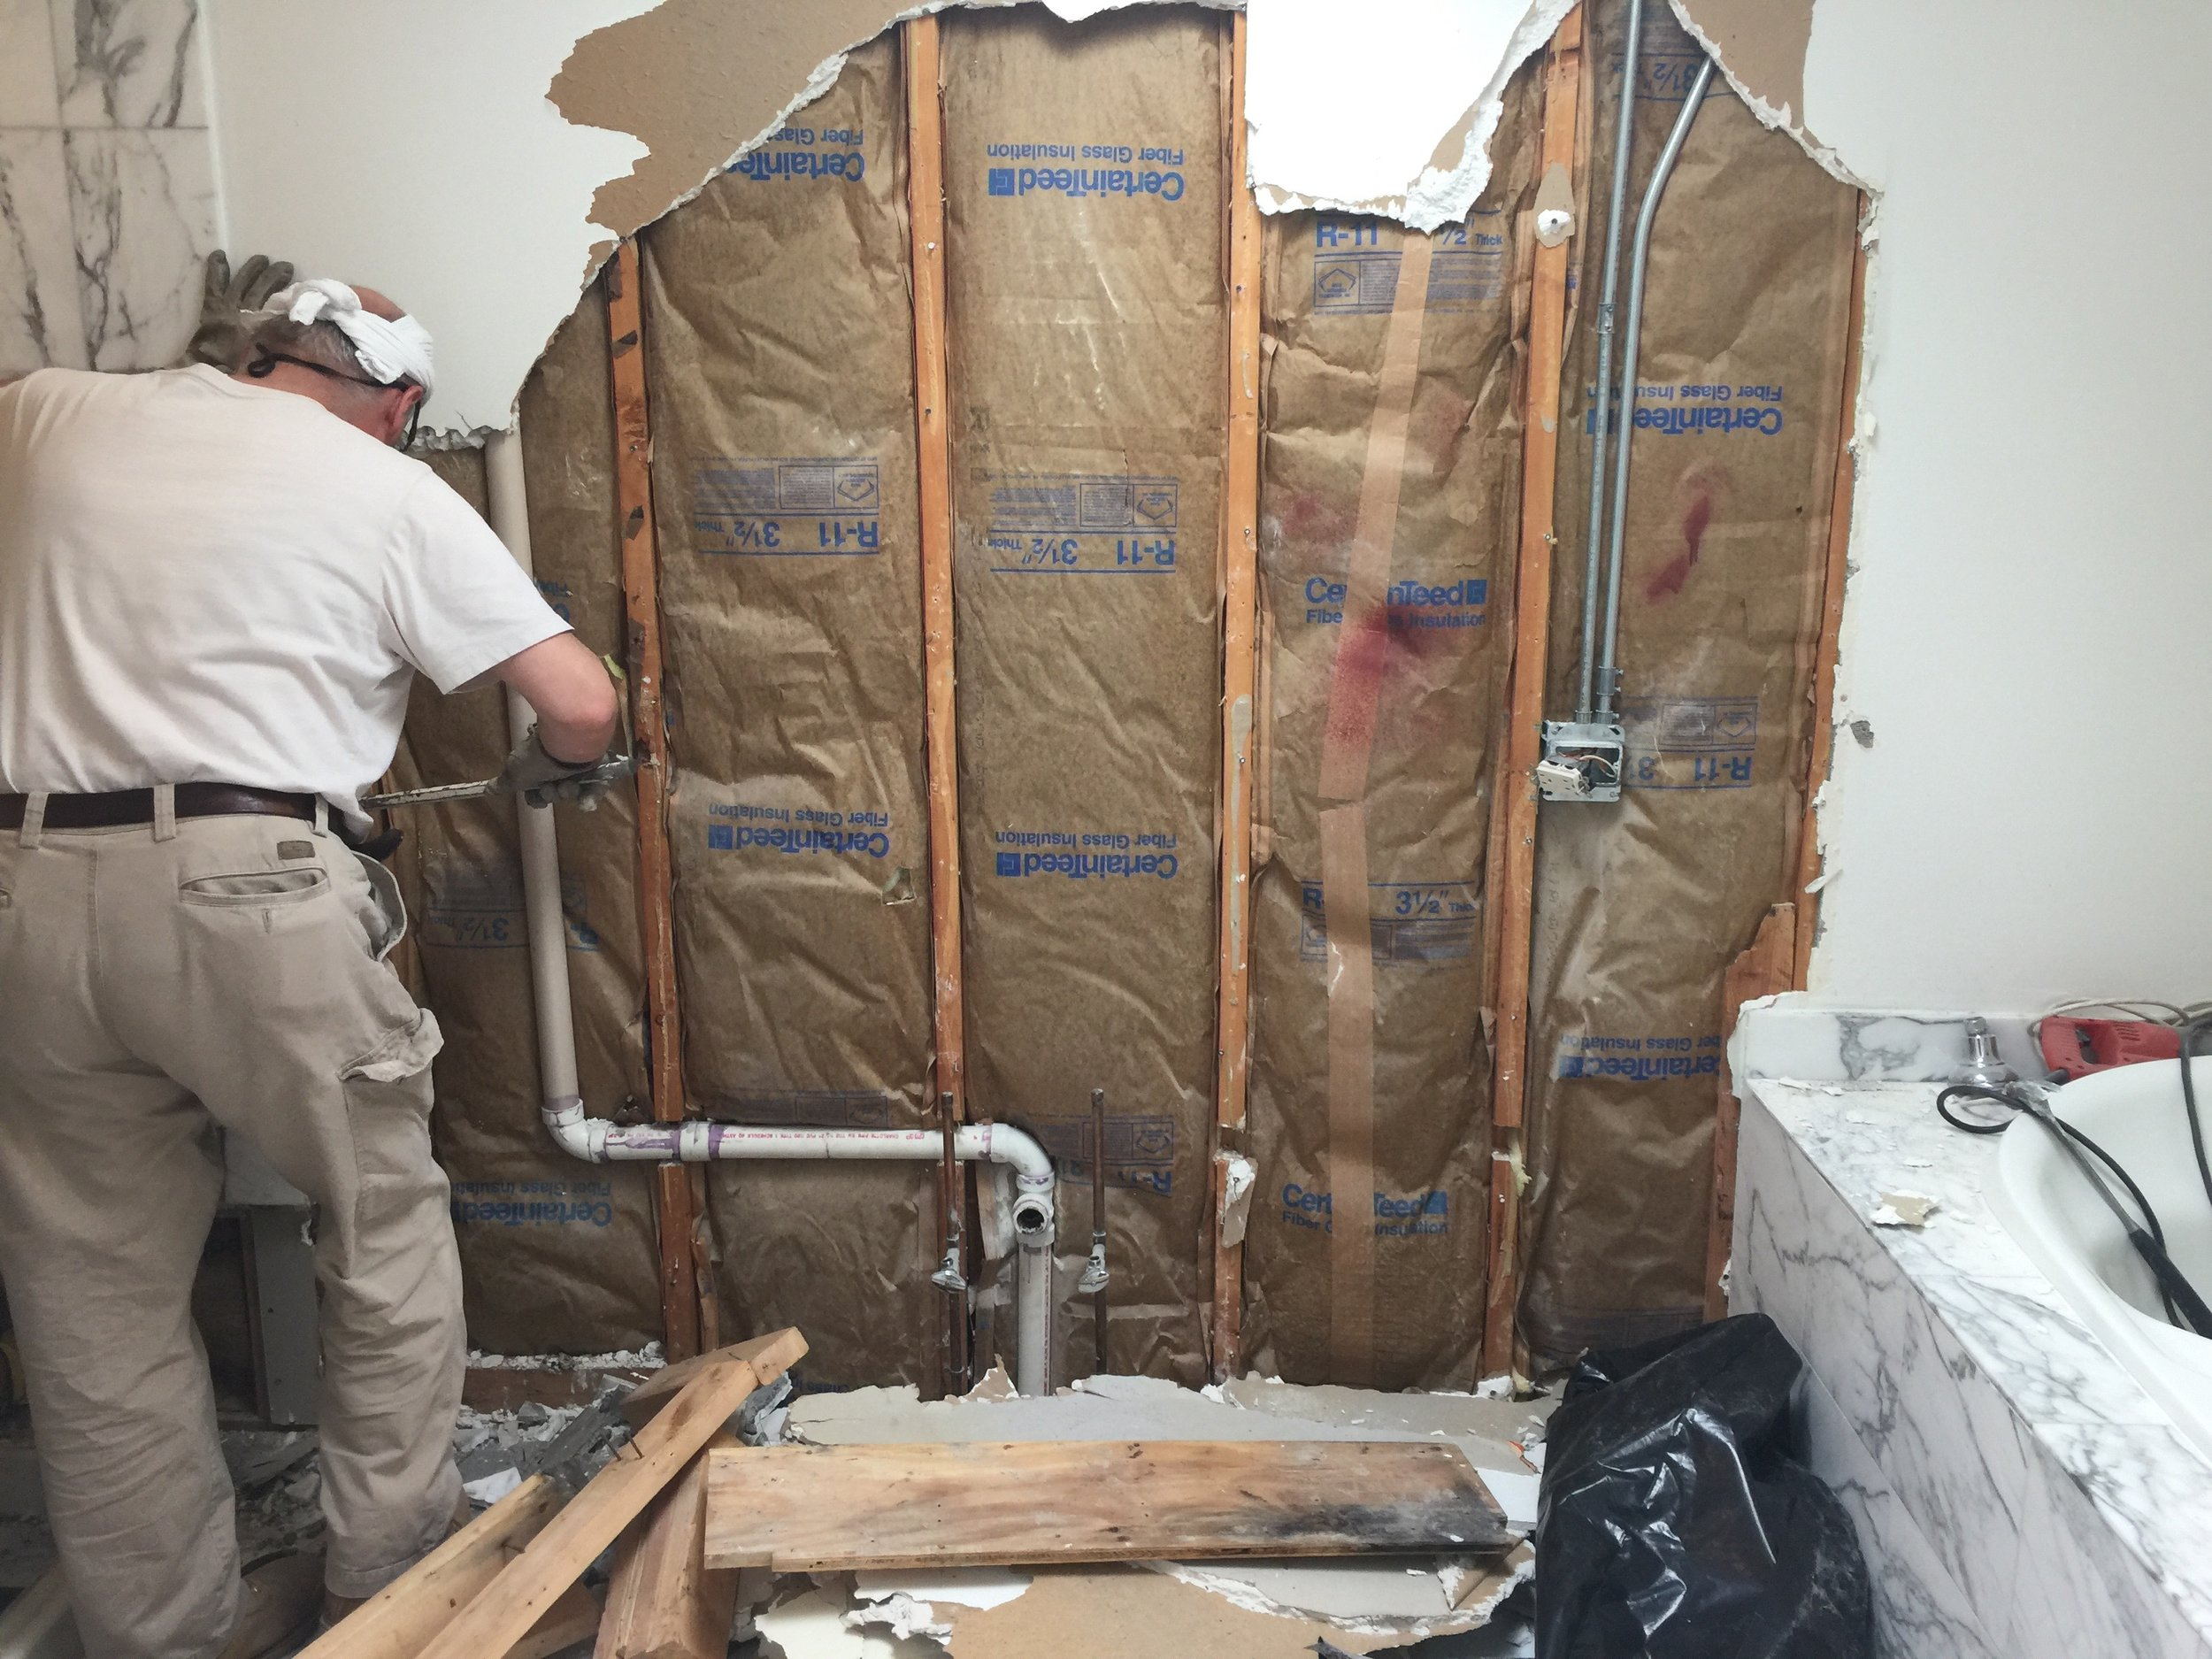 R-11 insulation on an exterior wall leads to very cold conditions in the bathroom. Proper insulation is a critical component of good renovation work, even though it is invisible when the project is complete.